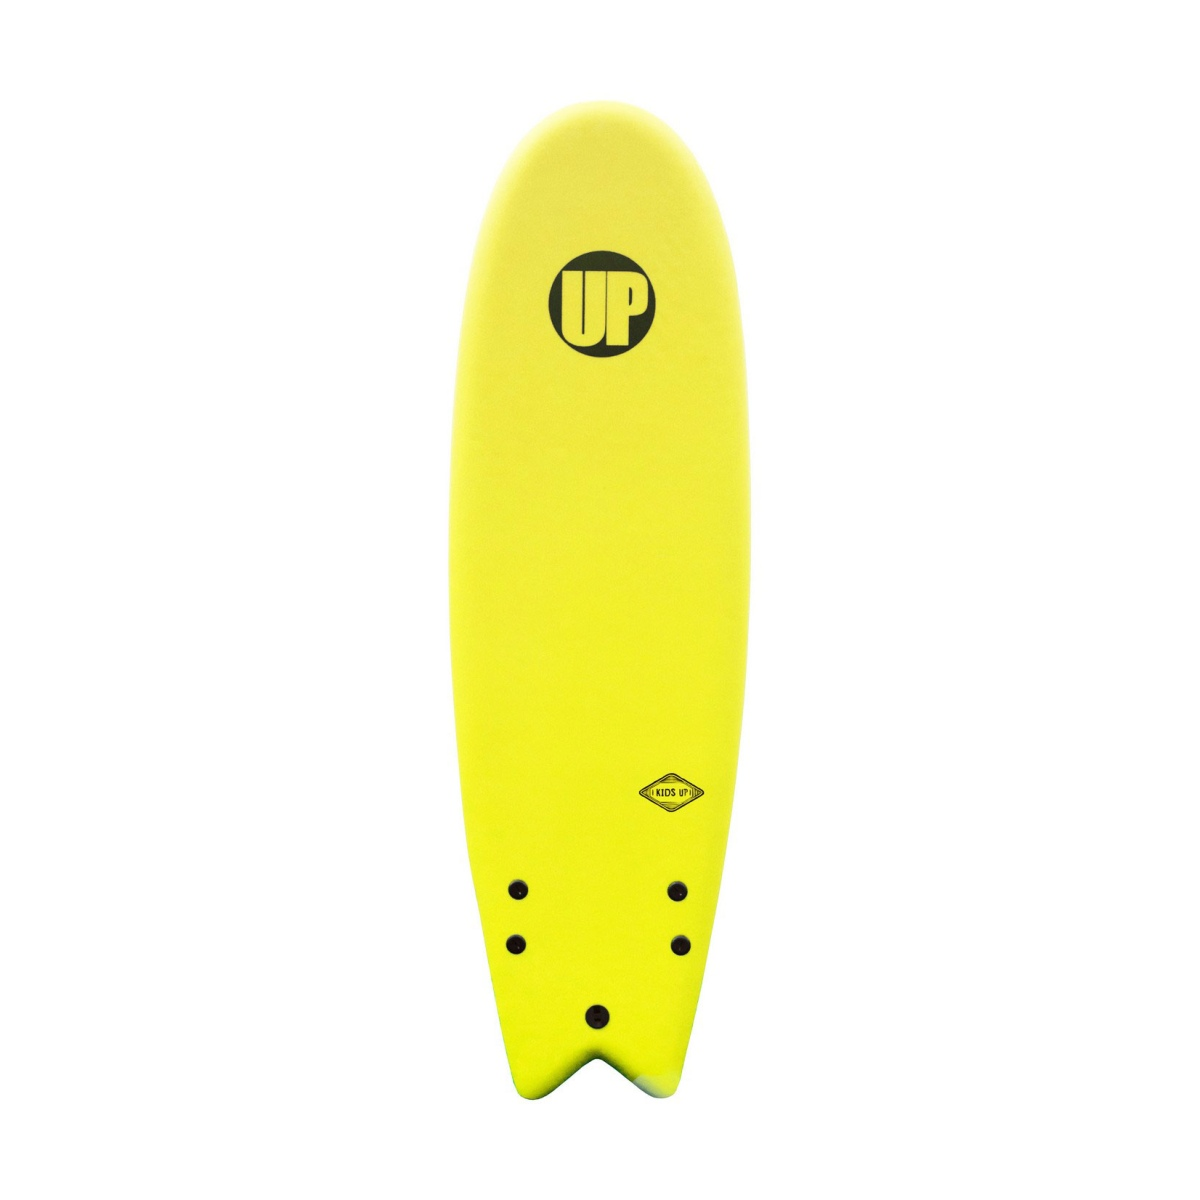 "Kids Up 5'9"". Tablas de Surf UP Surfboard"